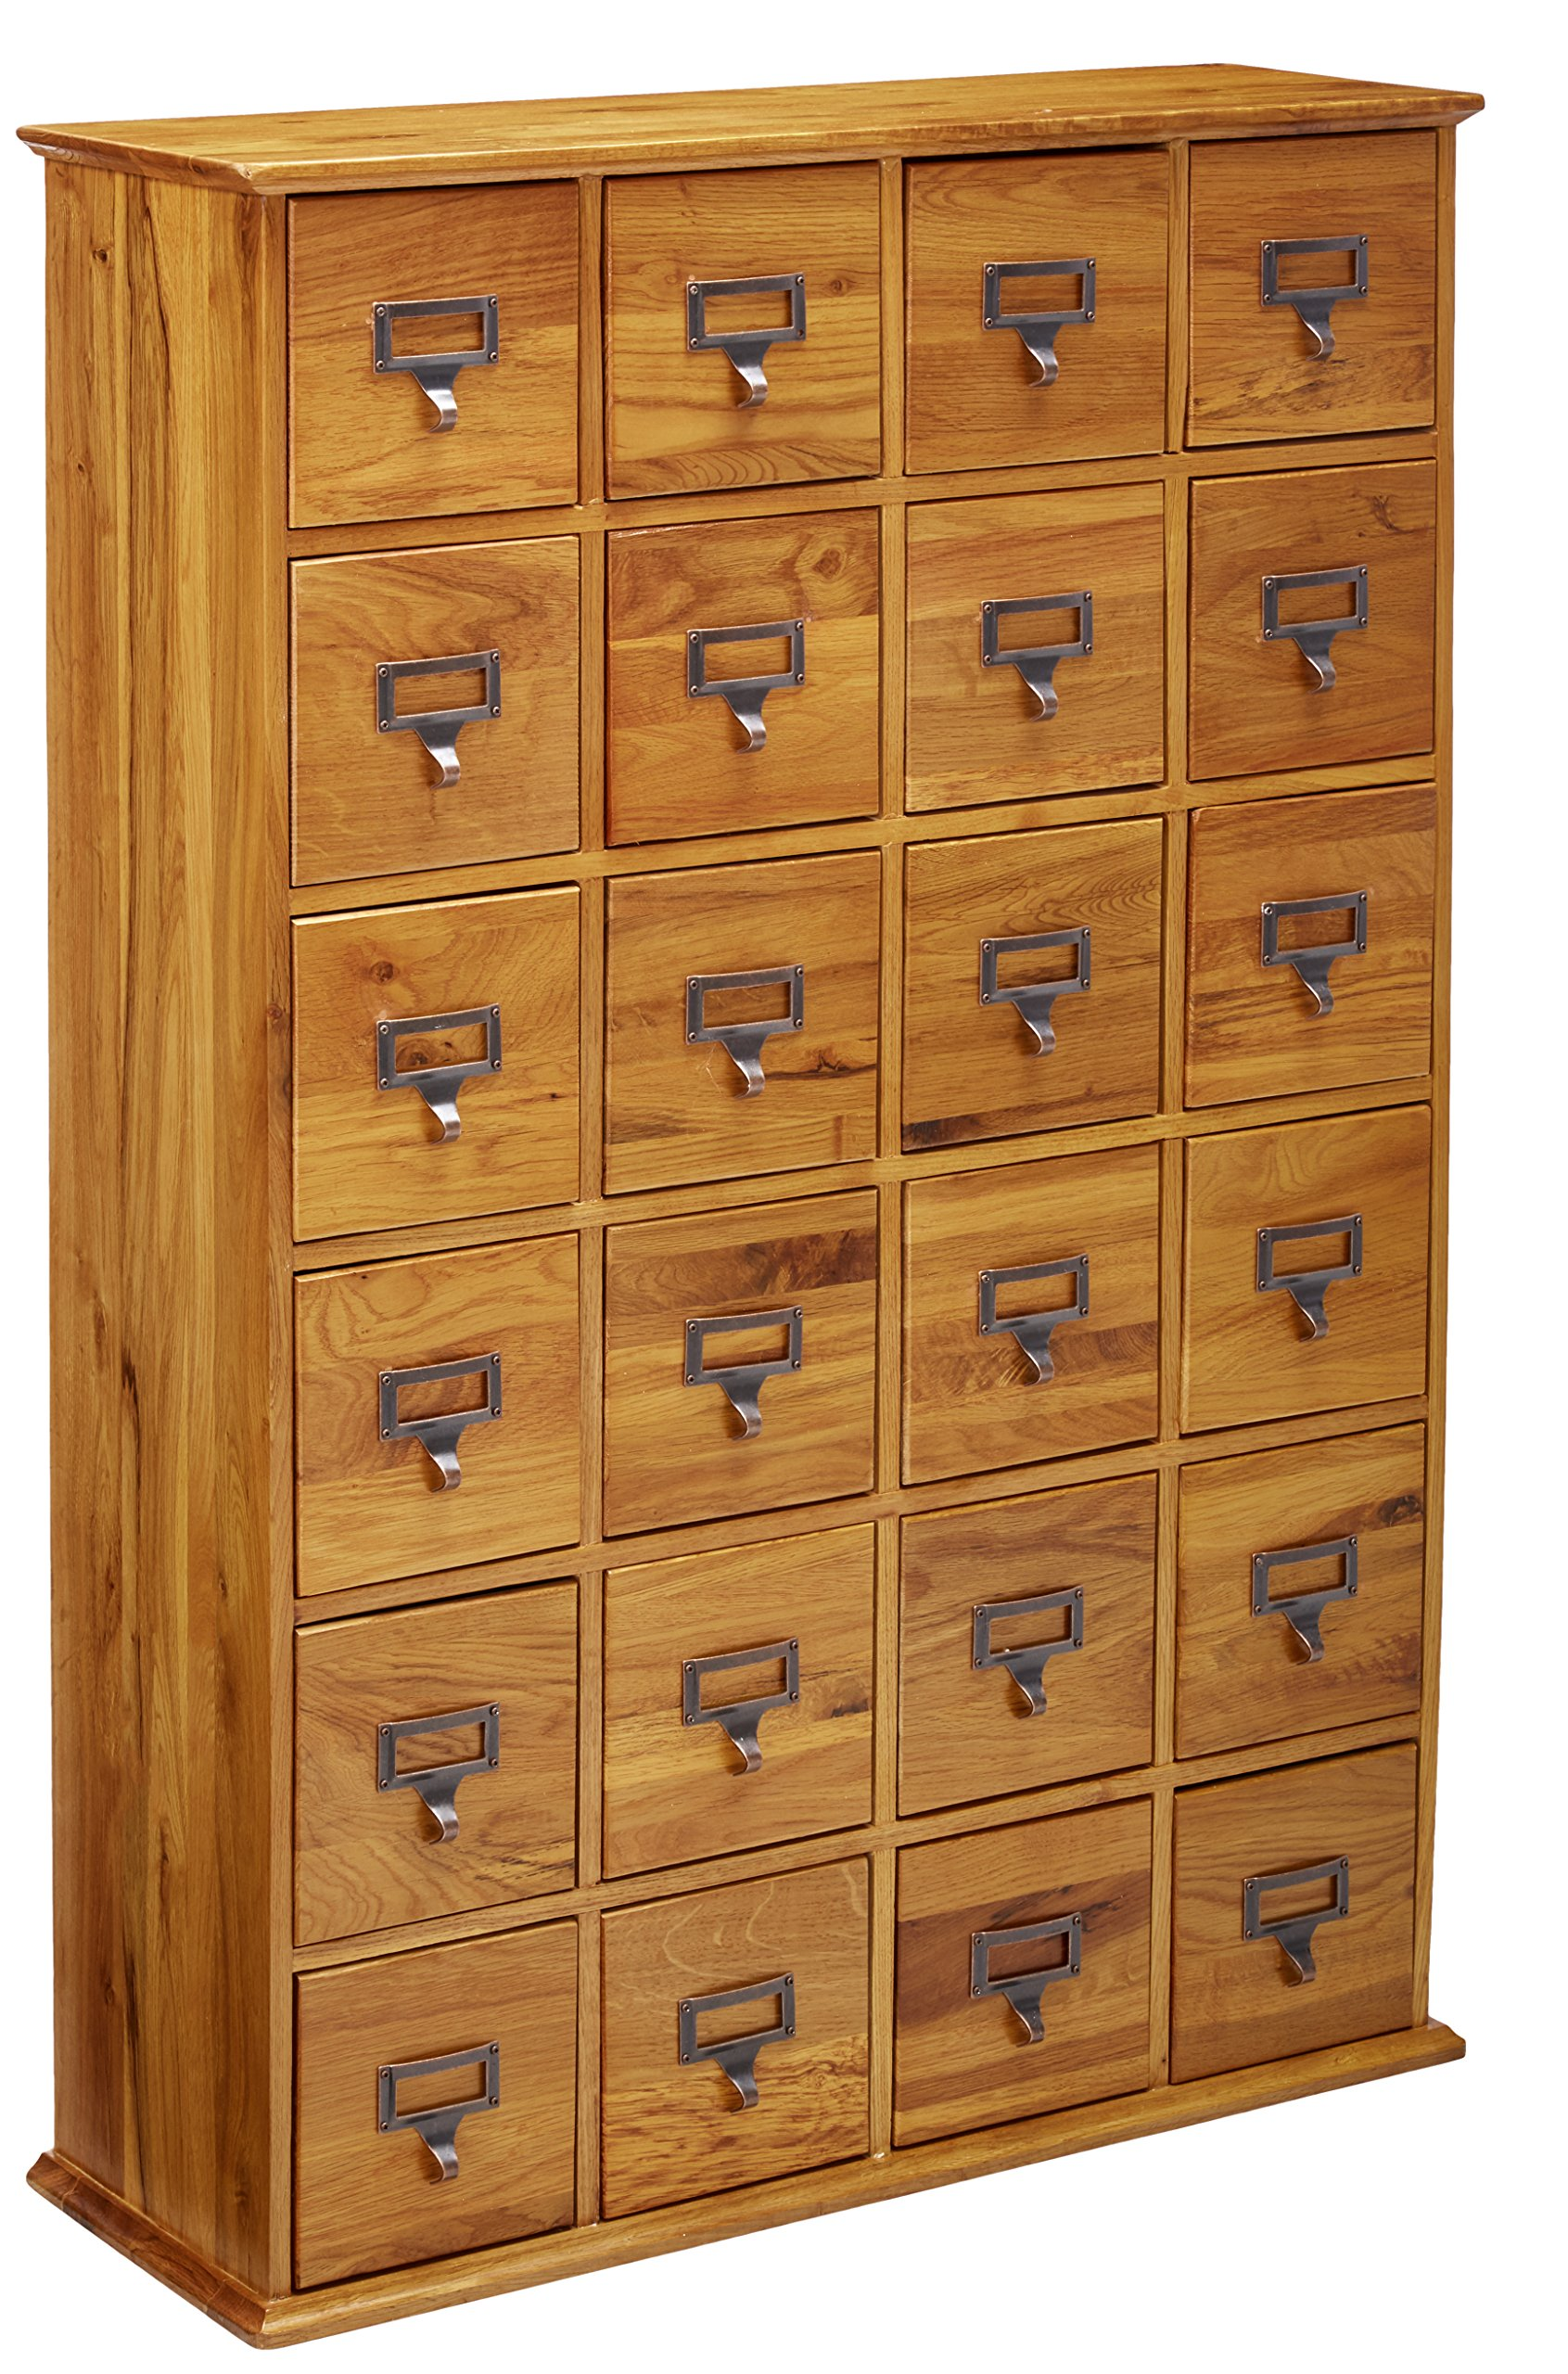 tall today chantrey in storage white garden overstock furniture library doors aero product with oliver free home bush shipping james cabinet